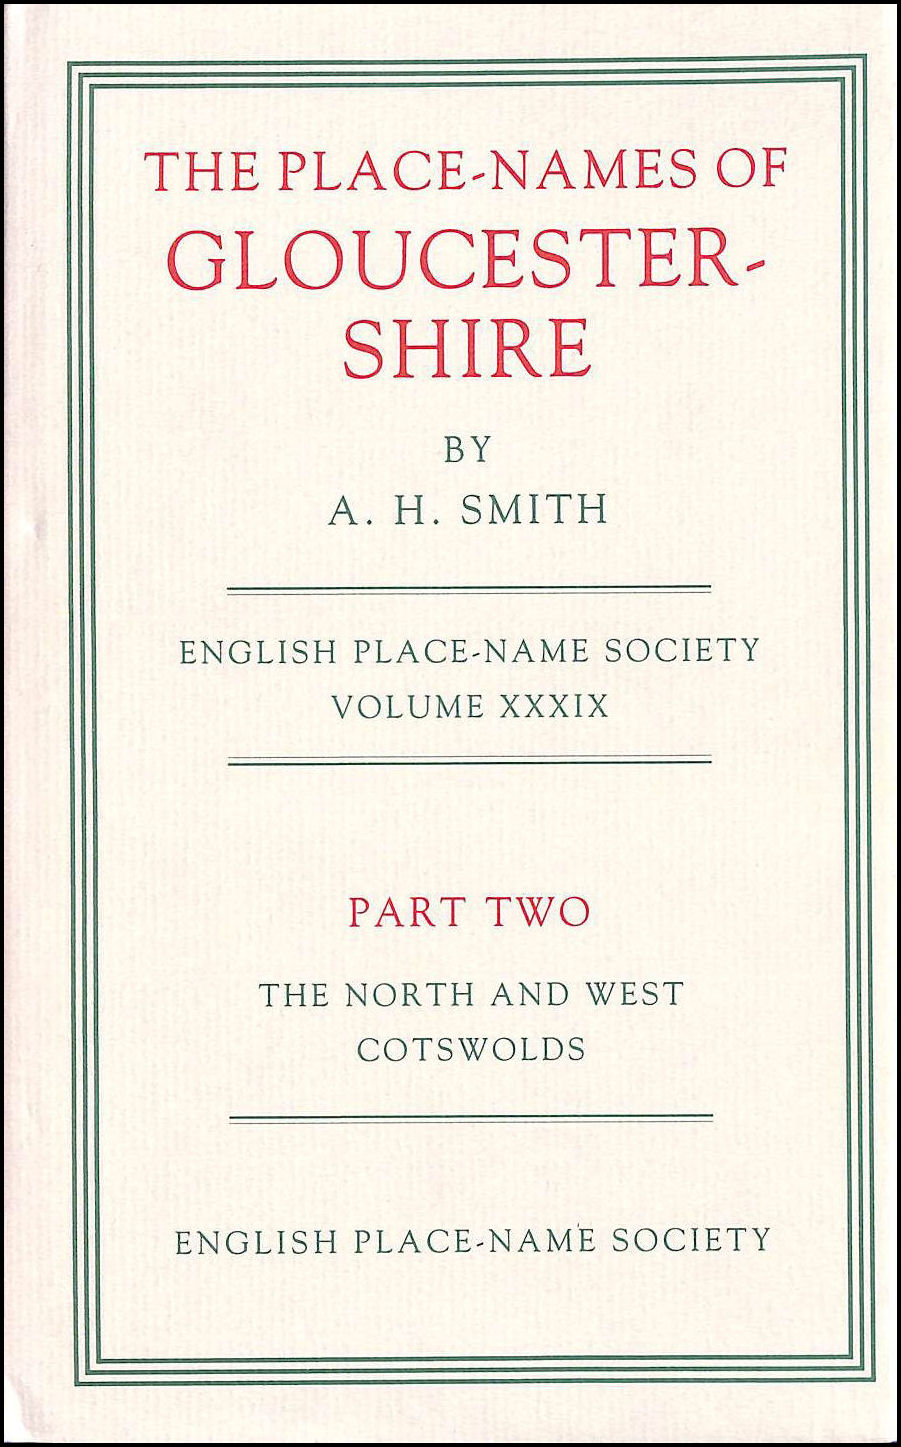 Image for English Place-Name Society: Volume 39, The Place-Names of Gloucestershire, Part 2, The North and West Cotswolds: North and West Cotswolds Pt. 2